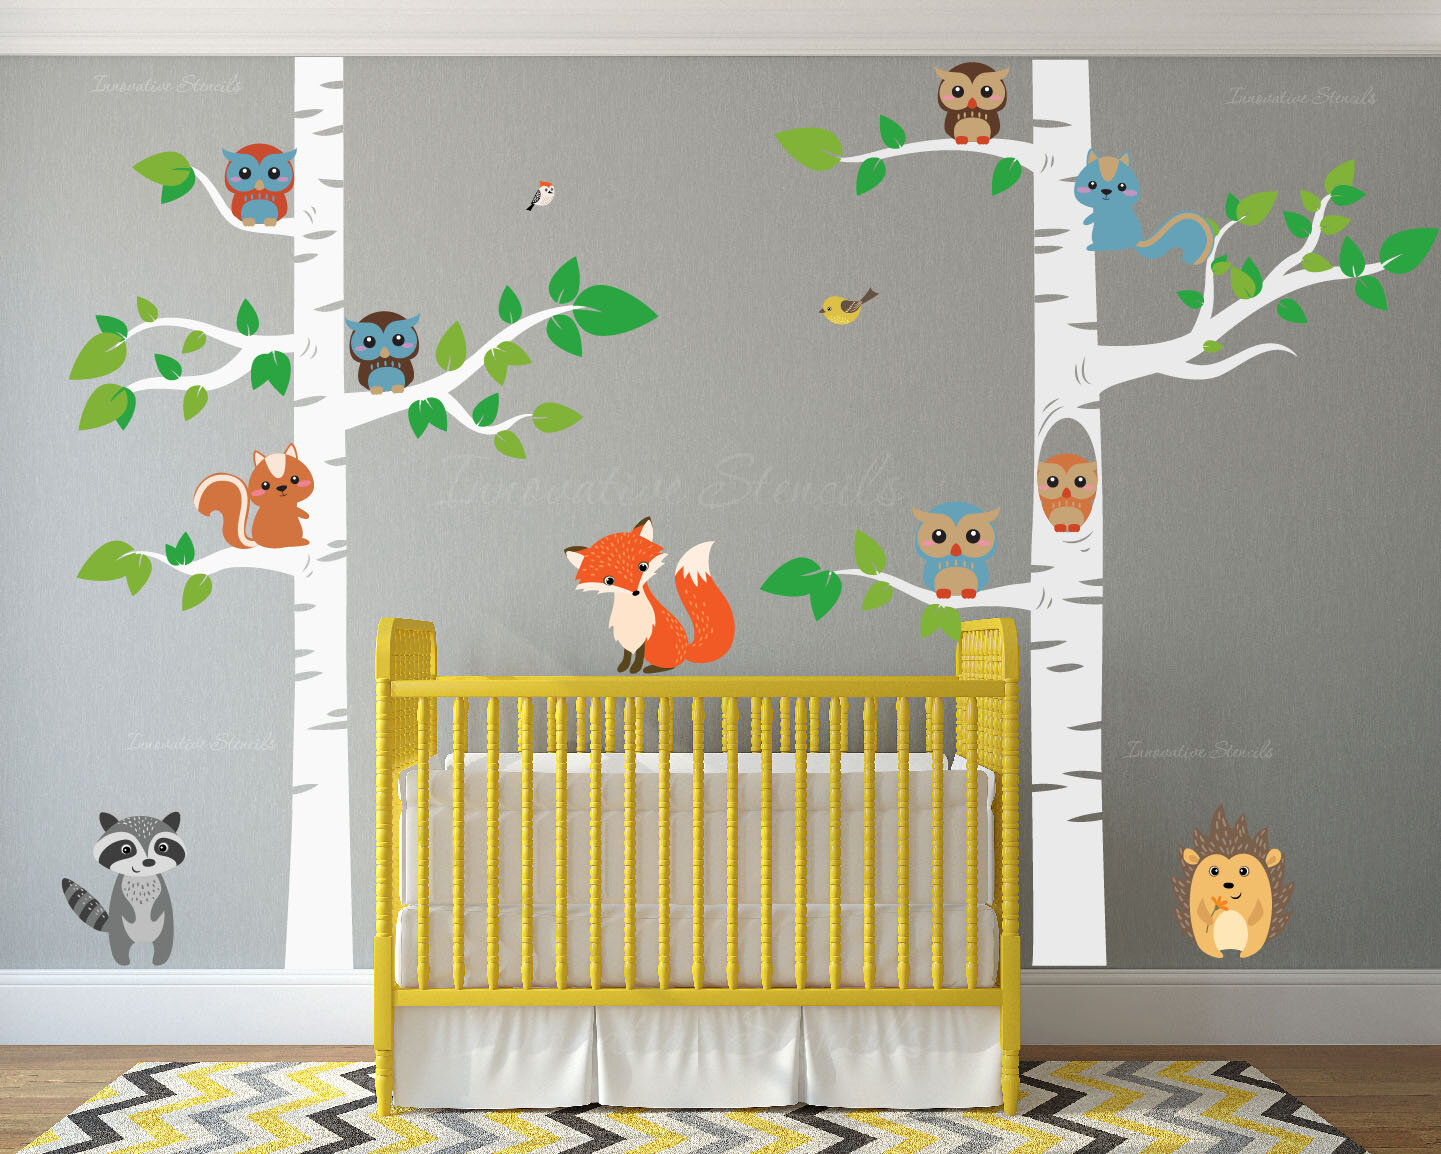 Innovative Stencils 12 Piece Birch Tree Nursery Wall Decal Set Reviews Wayfair